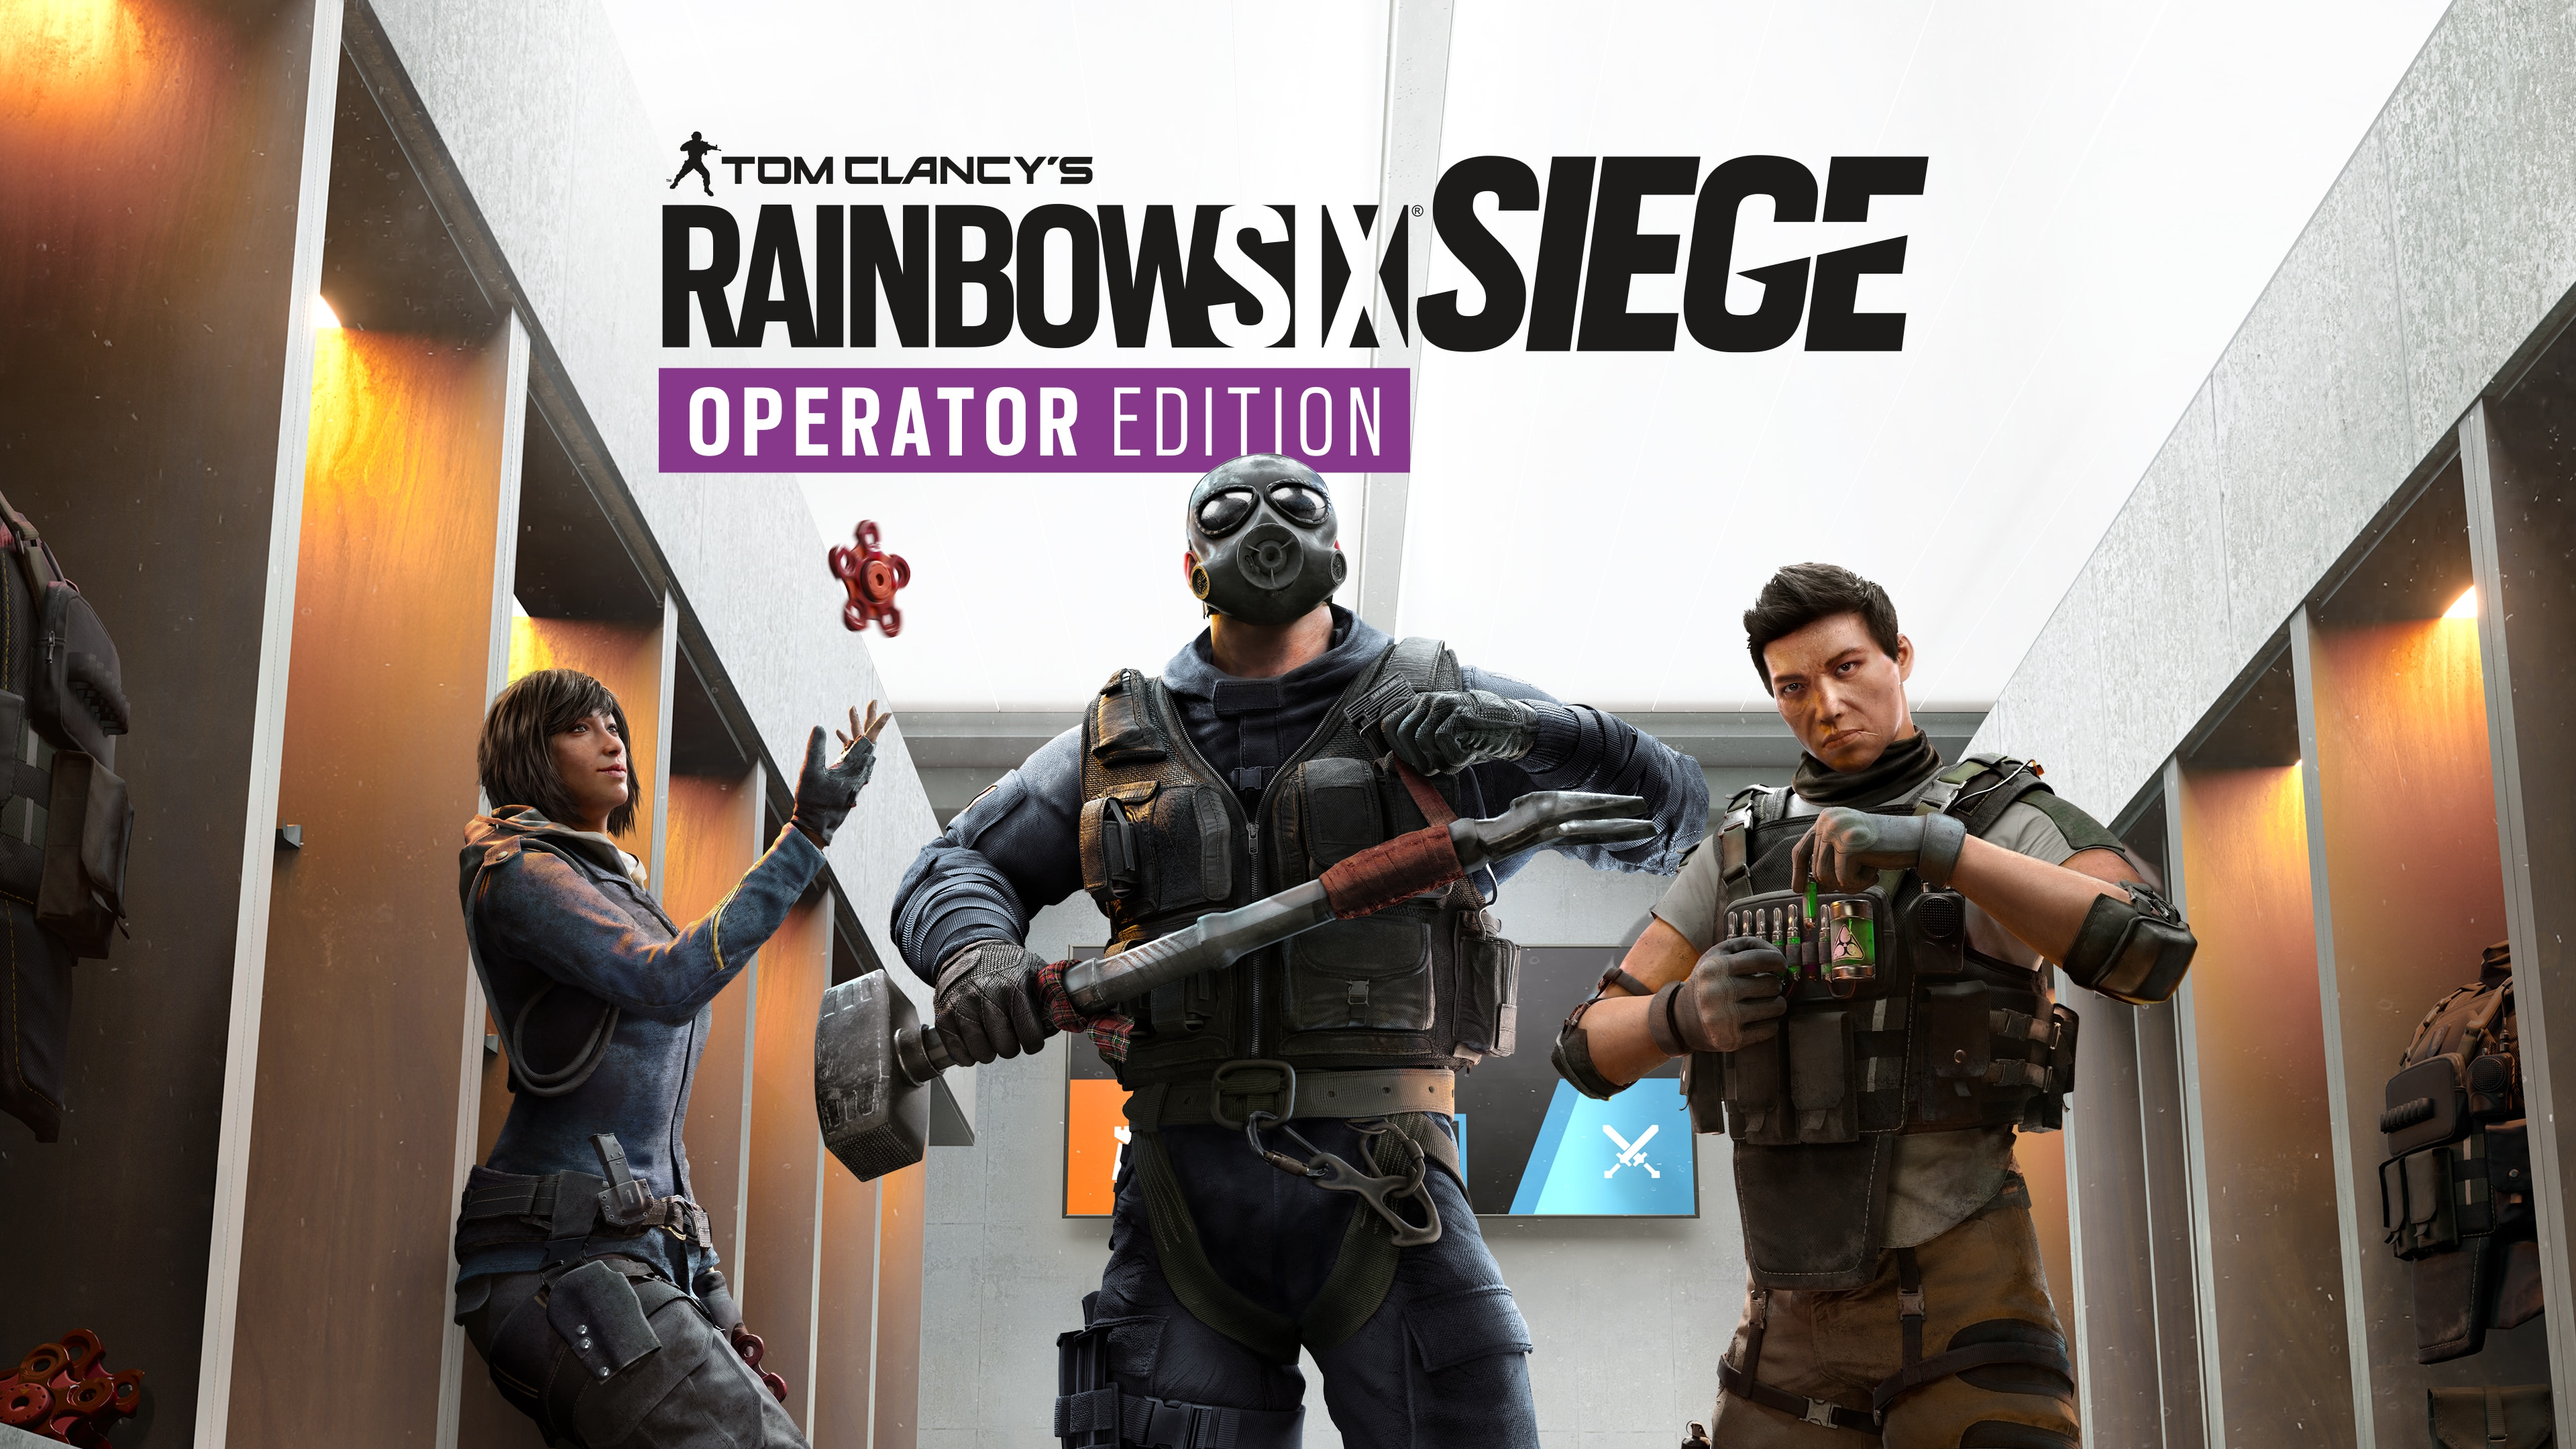 Rainbow Six Siege Operator Edition (Simplified Chinese, English, Korean, Thai, Japanese, Traditional Chinese)